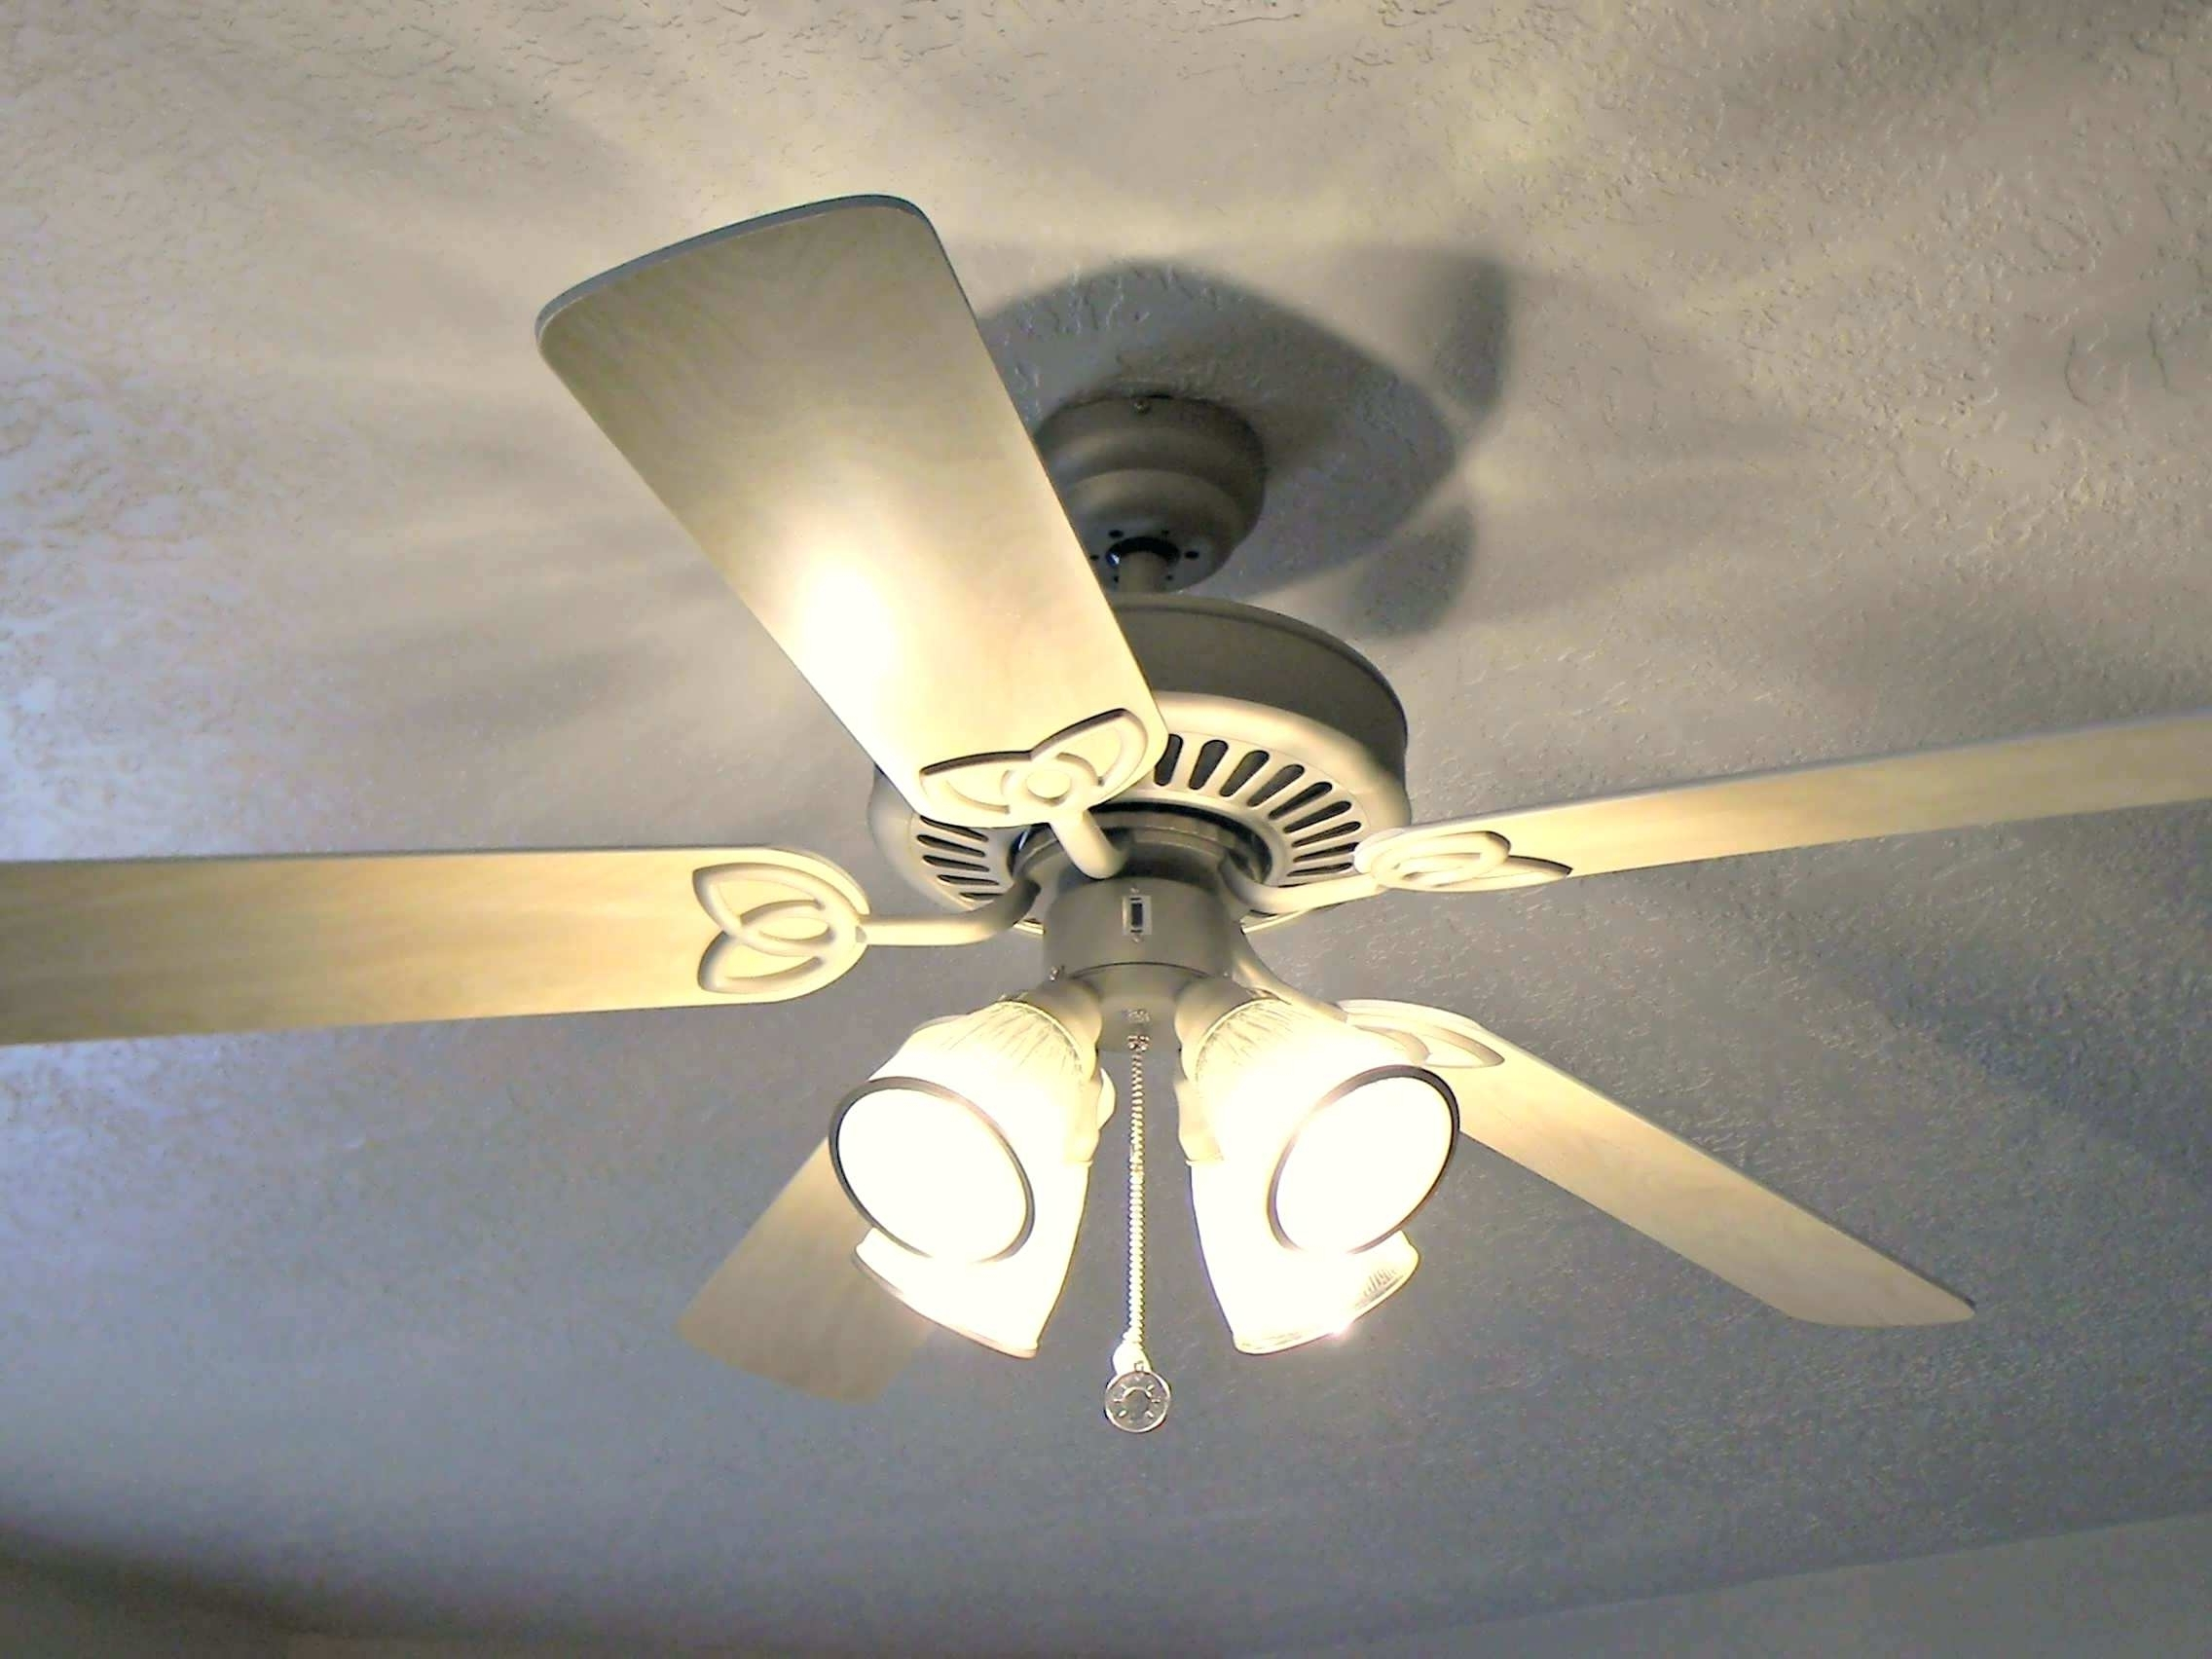 2018 Outdoor Ceiling Fans At Menards With Light: Variety Of Styles To Complement Your Home Decor With Menards (Gallery 8 of 20)